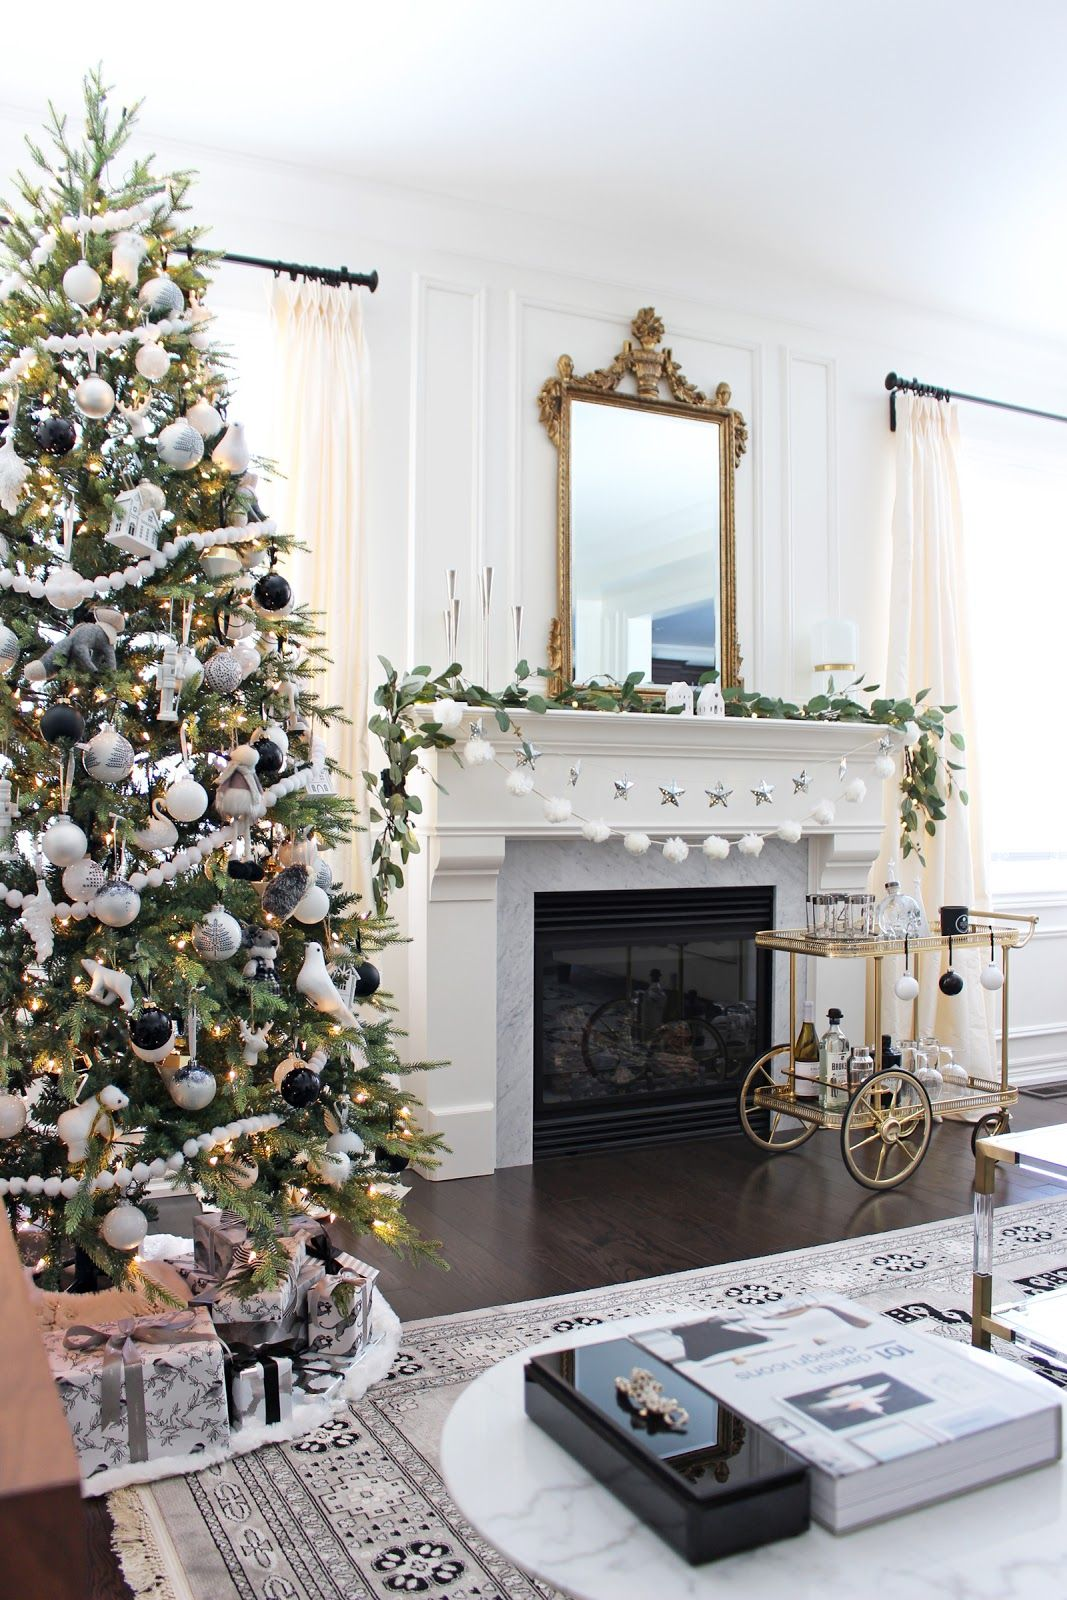 Serge Mouille Floor Lamp Black And White Christmas Decor Black And White Christmas Tree Hygge Chris White Christmas Decor Christmas Mantels Tulip Side Table